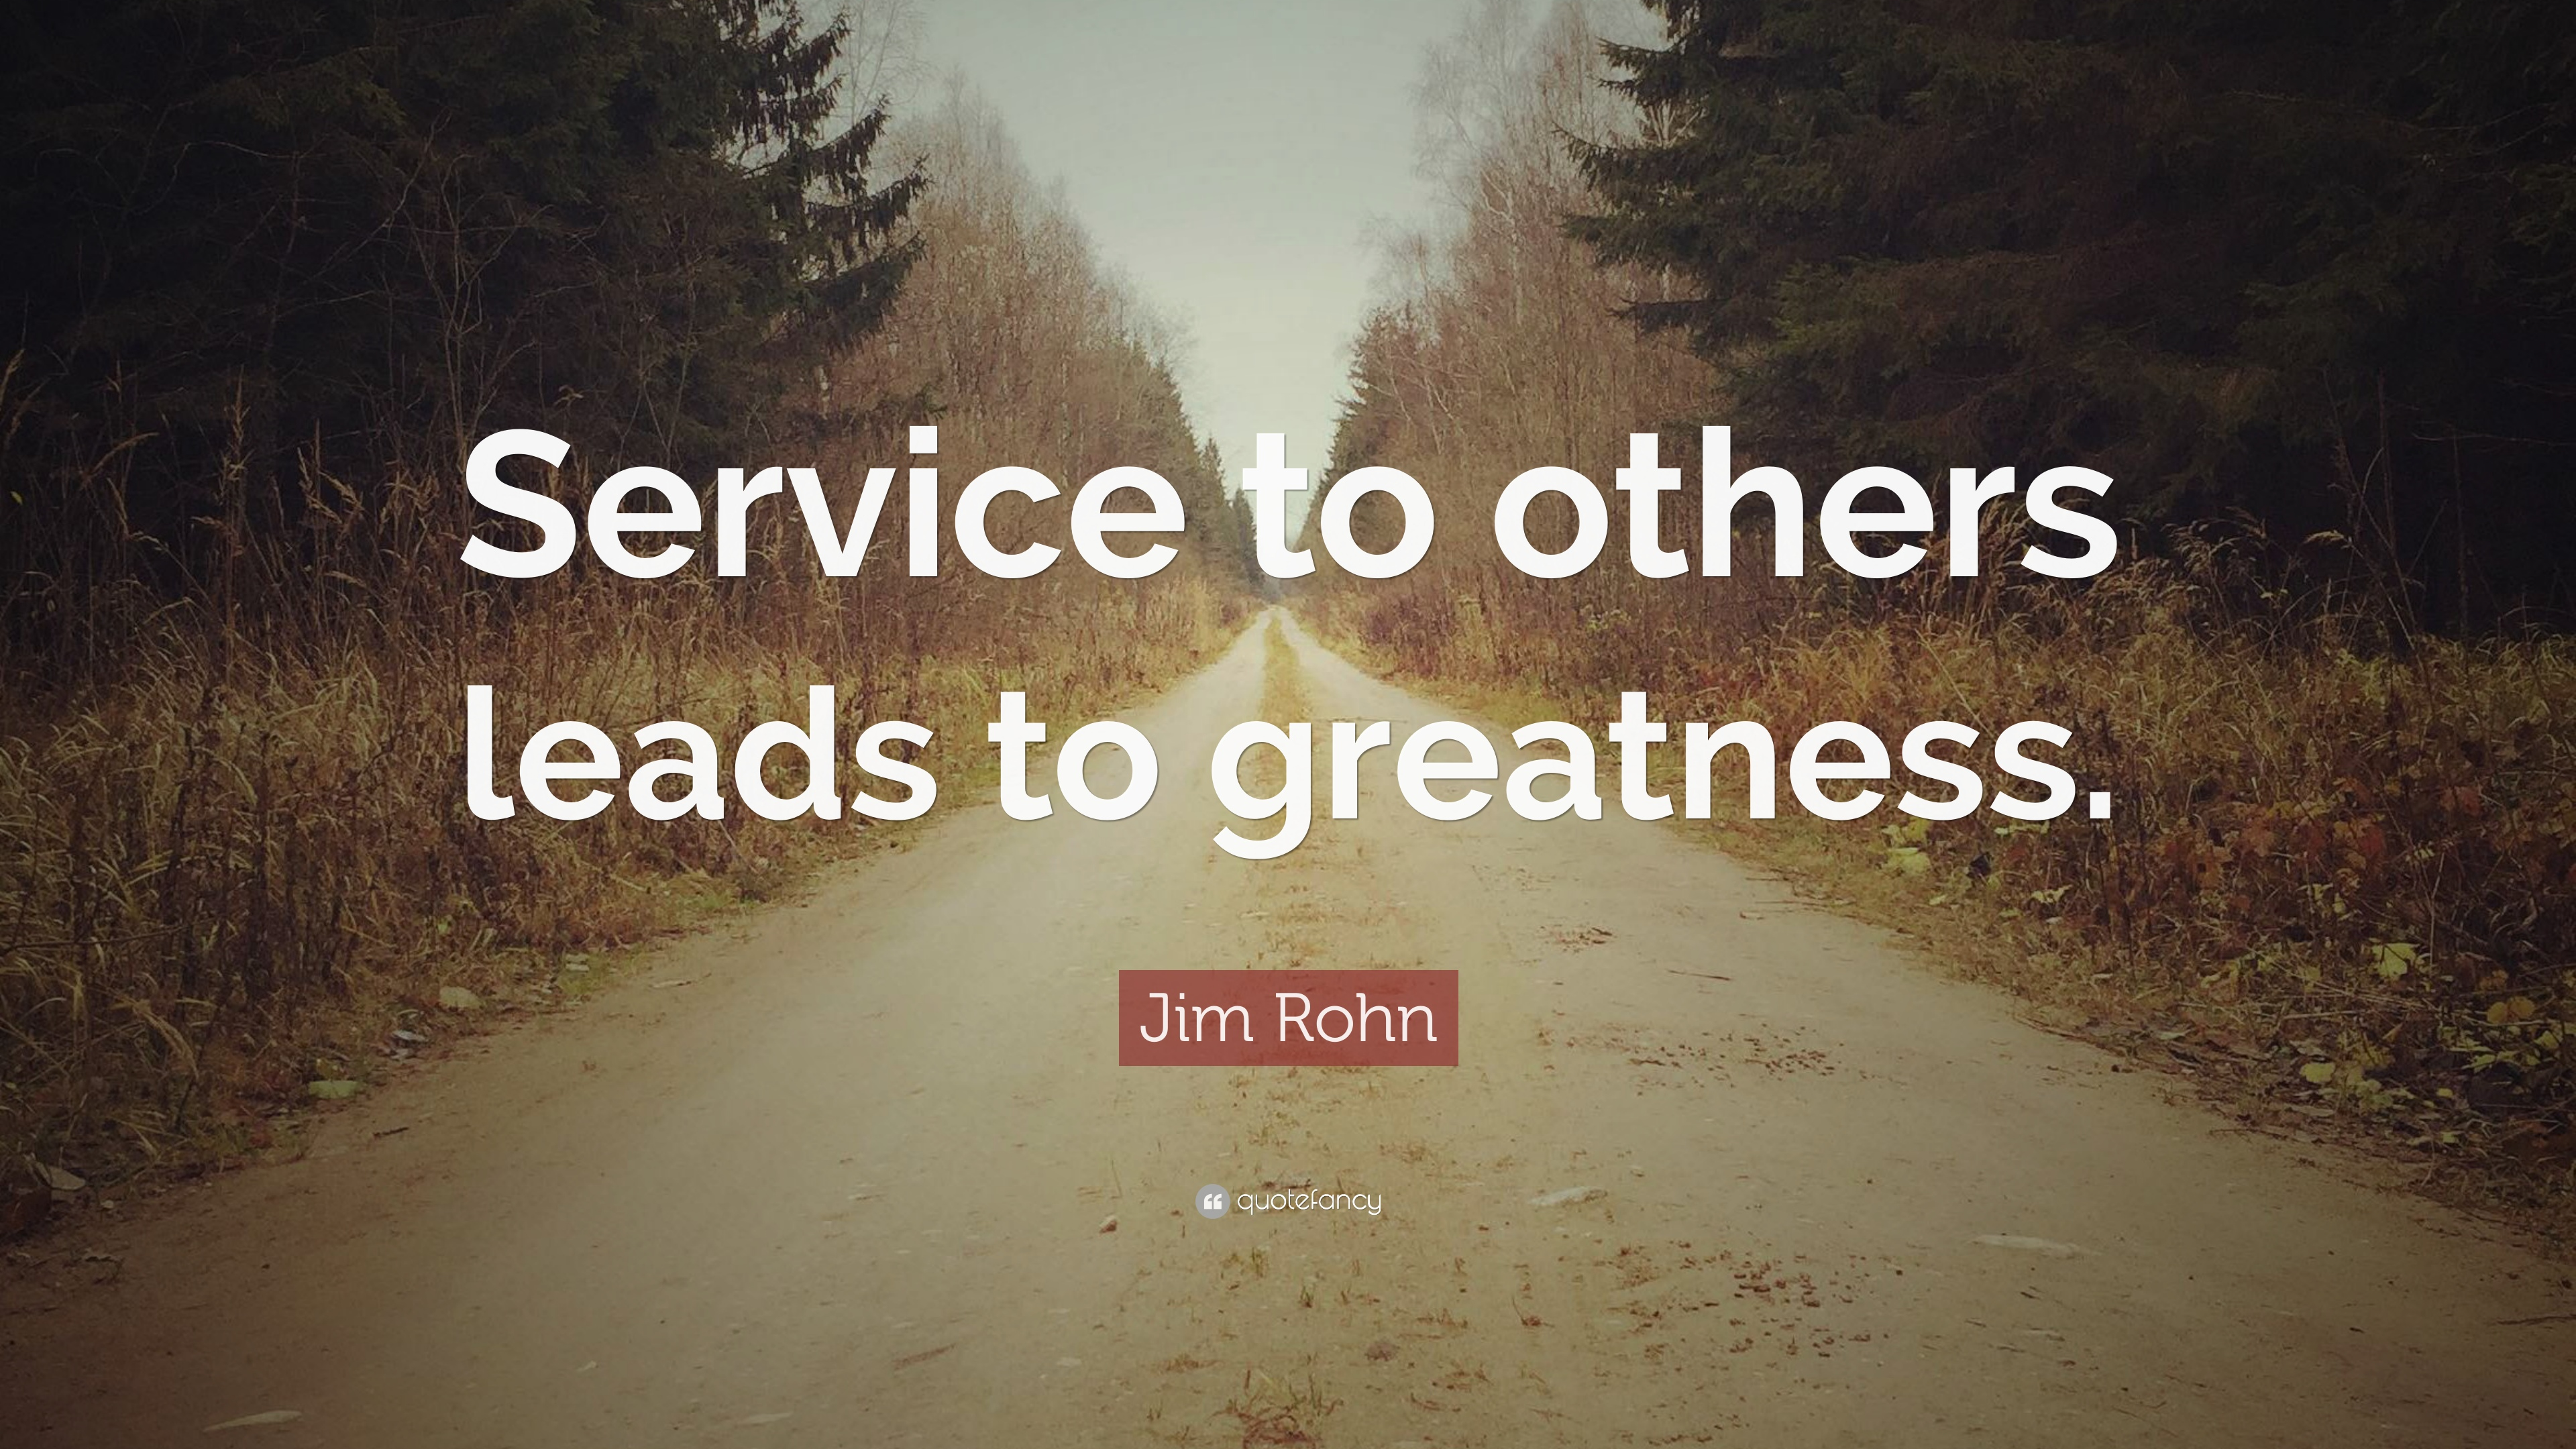 jim rohn quote service to others leads to greatness 12 wallpapers quotefancy. Black Bedroom Furniture Sets. Home Design Ideas